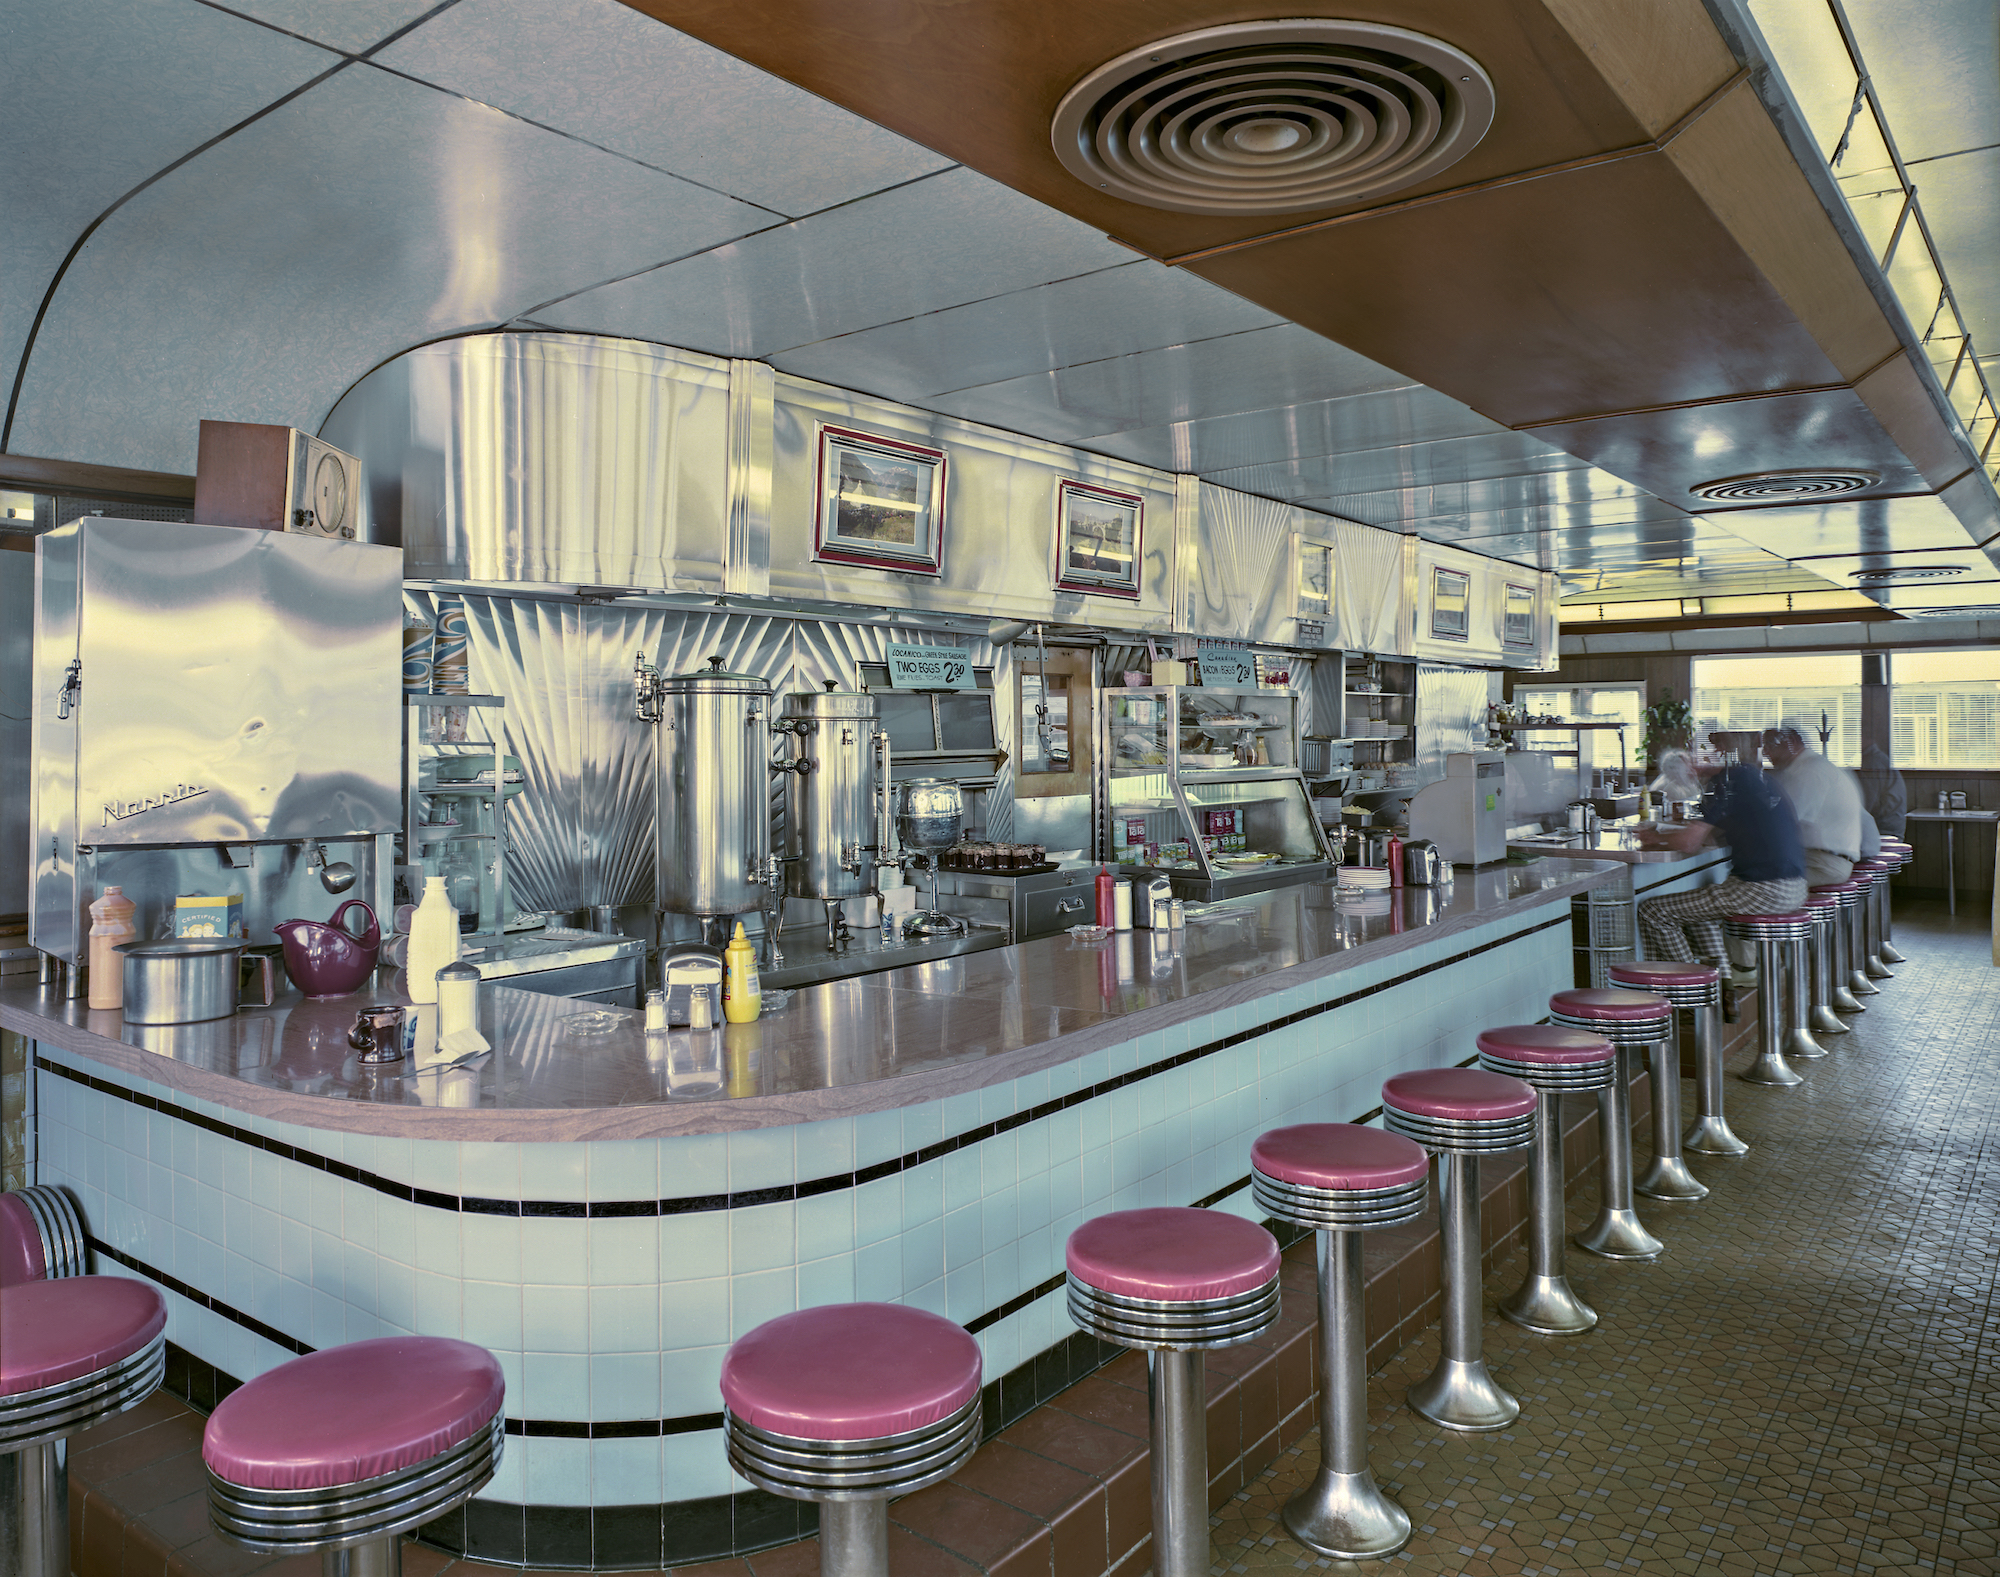 Jim Dow, The Town Diner interior, US 20, Watertown, Massachusetts, 1979. Courtesy the artist